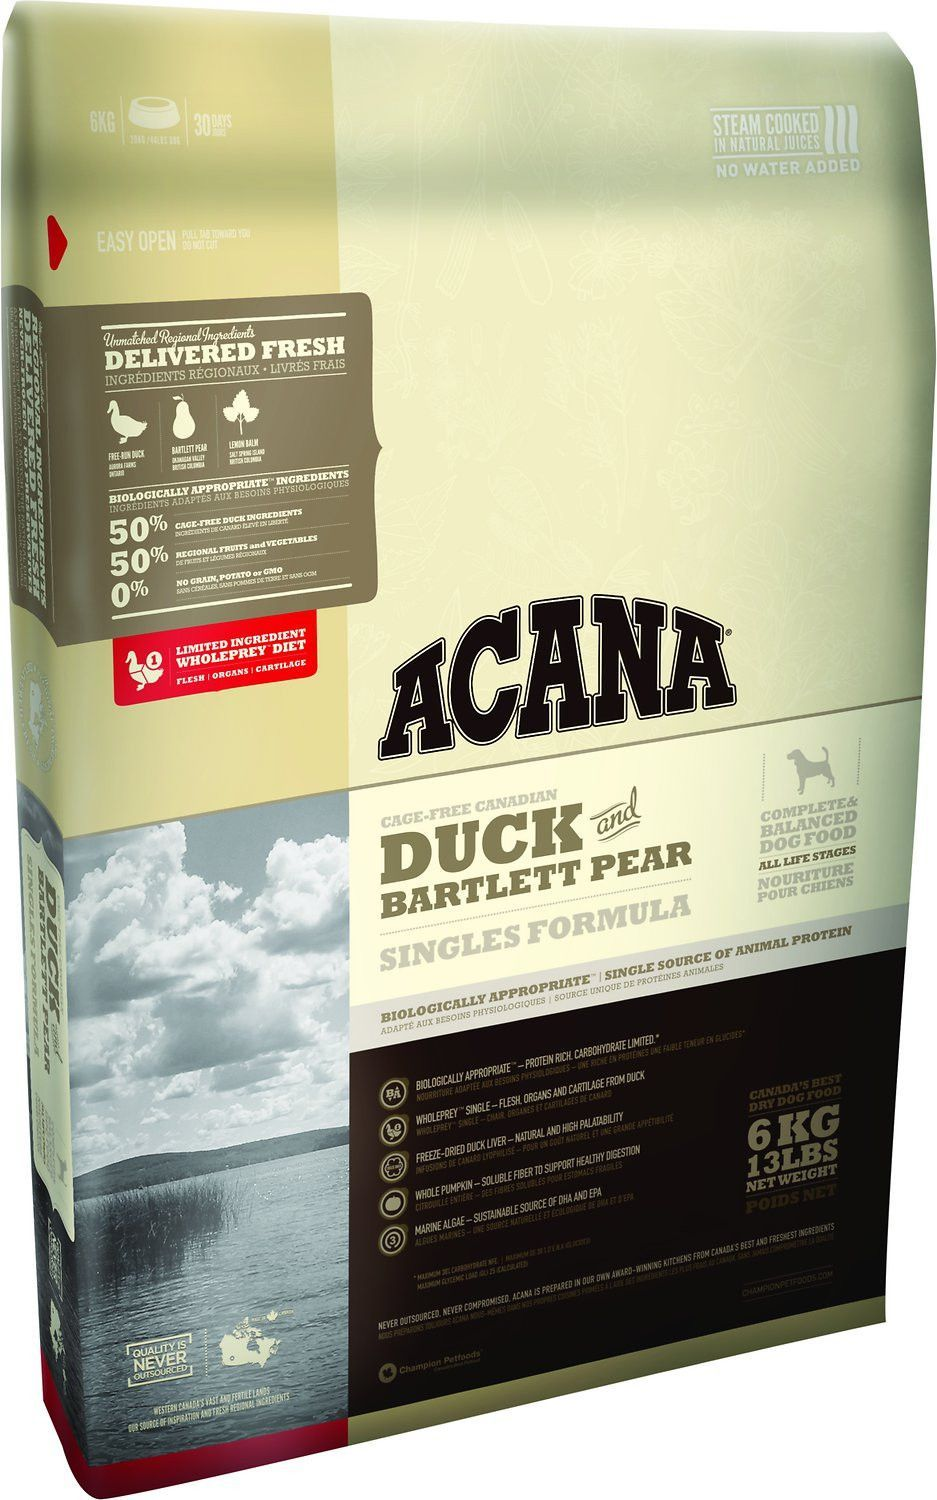 Acana Duck Bartlett Pear Singles Formula Dry Dog Food Dog Food